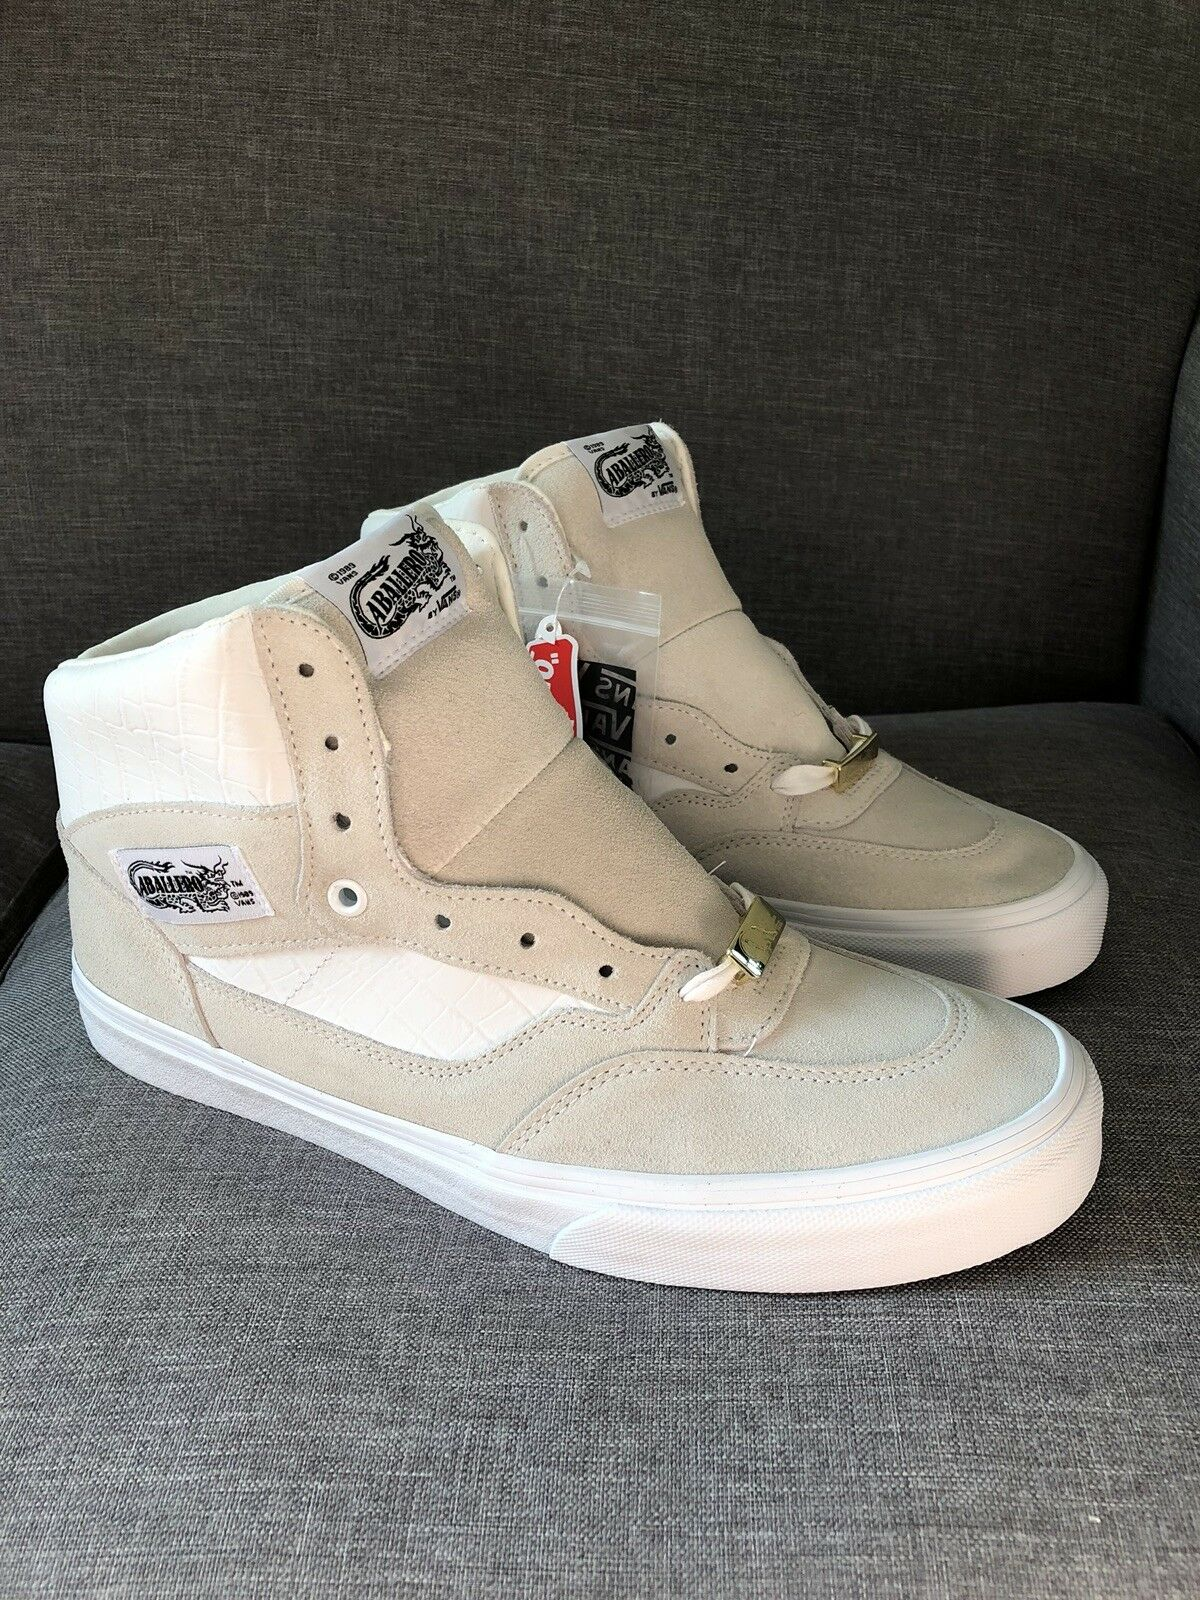 Vans Caballero Full Cab Off White Suede Leather Croc Size 11